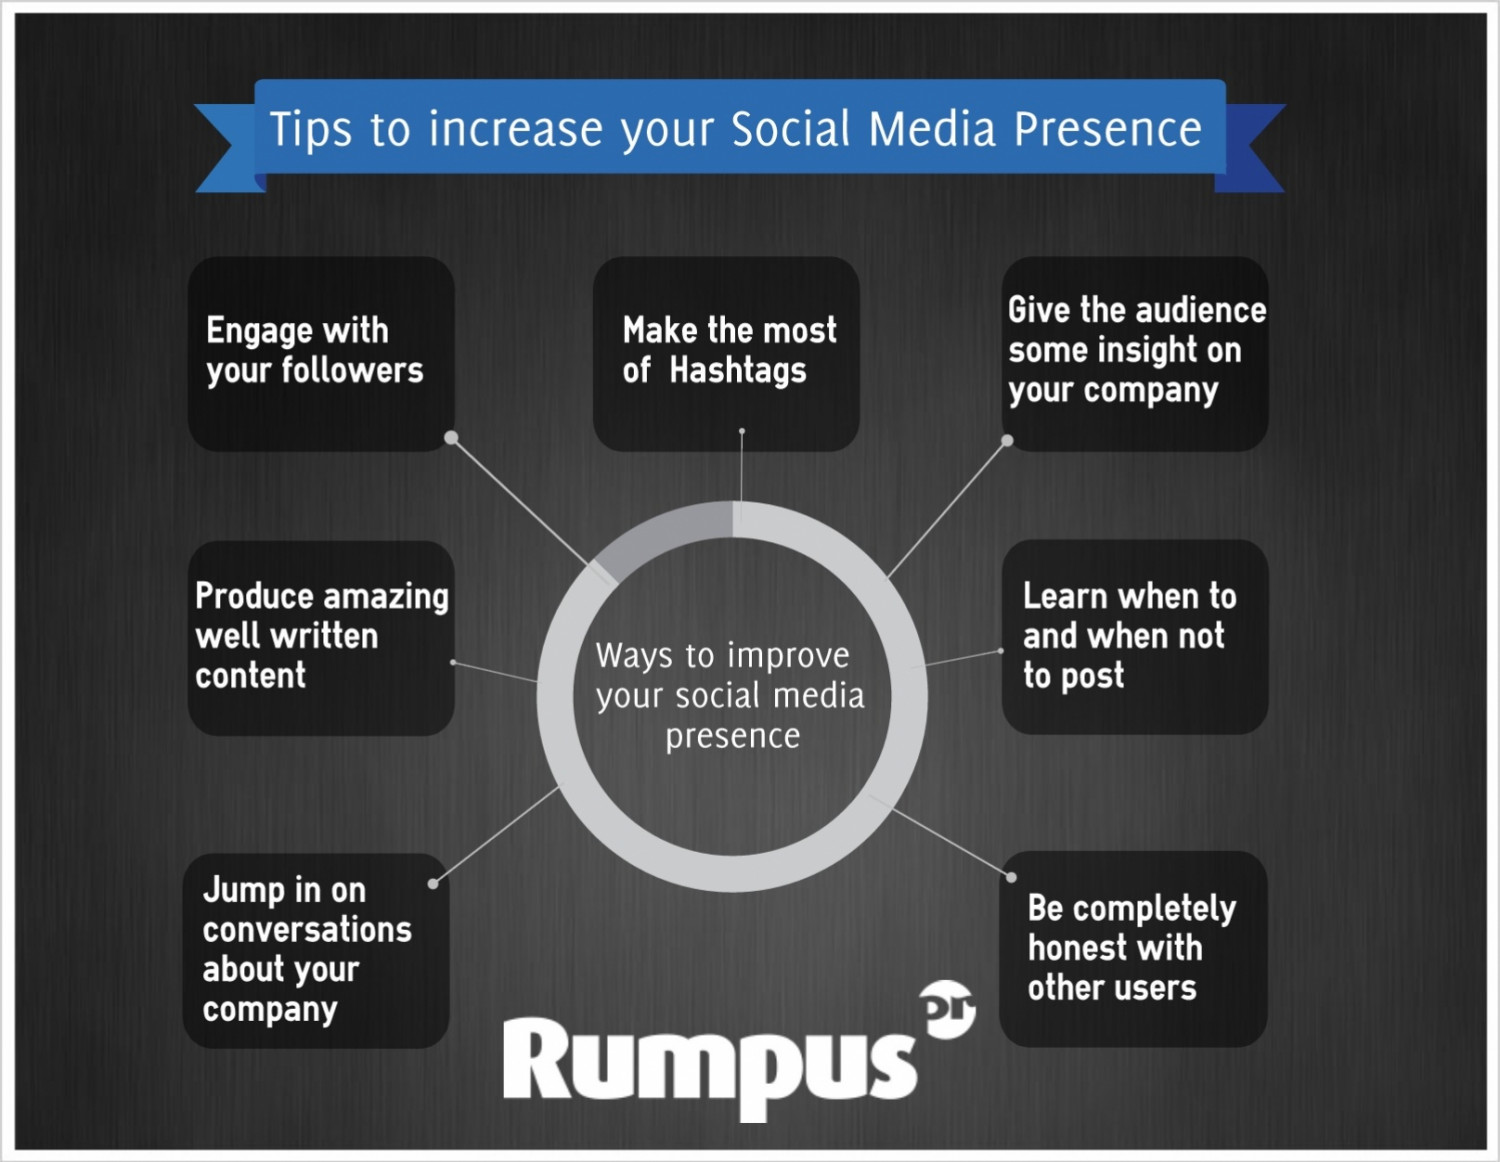 Tips to increase your Social Media Presence Infographic